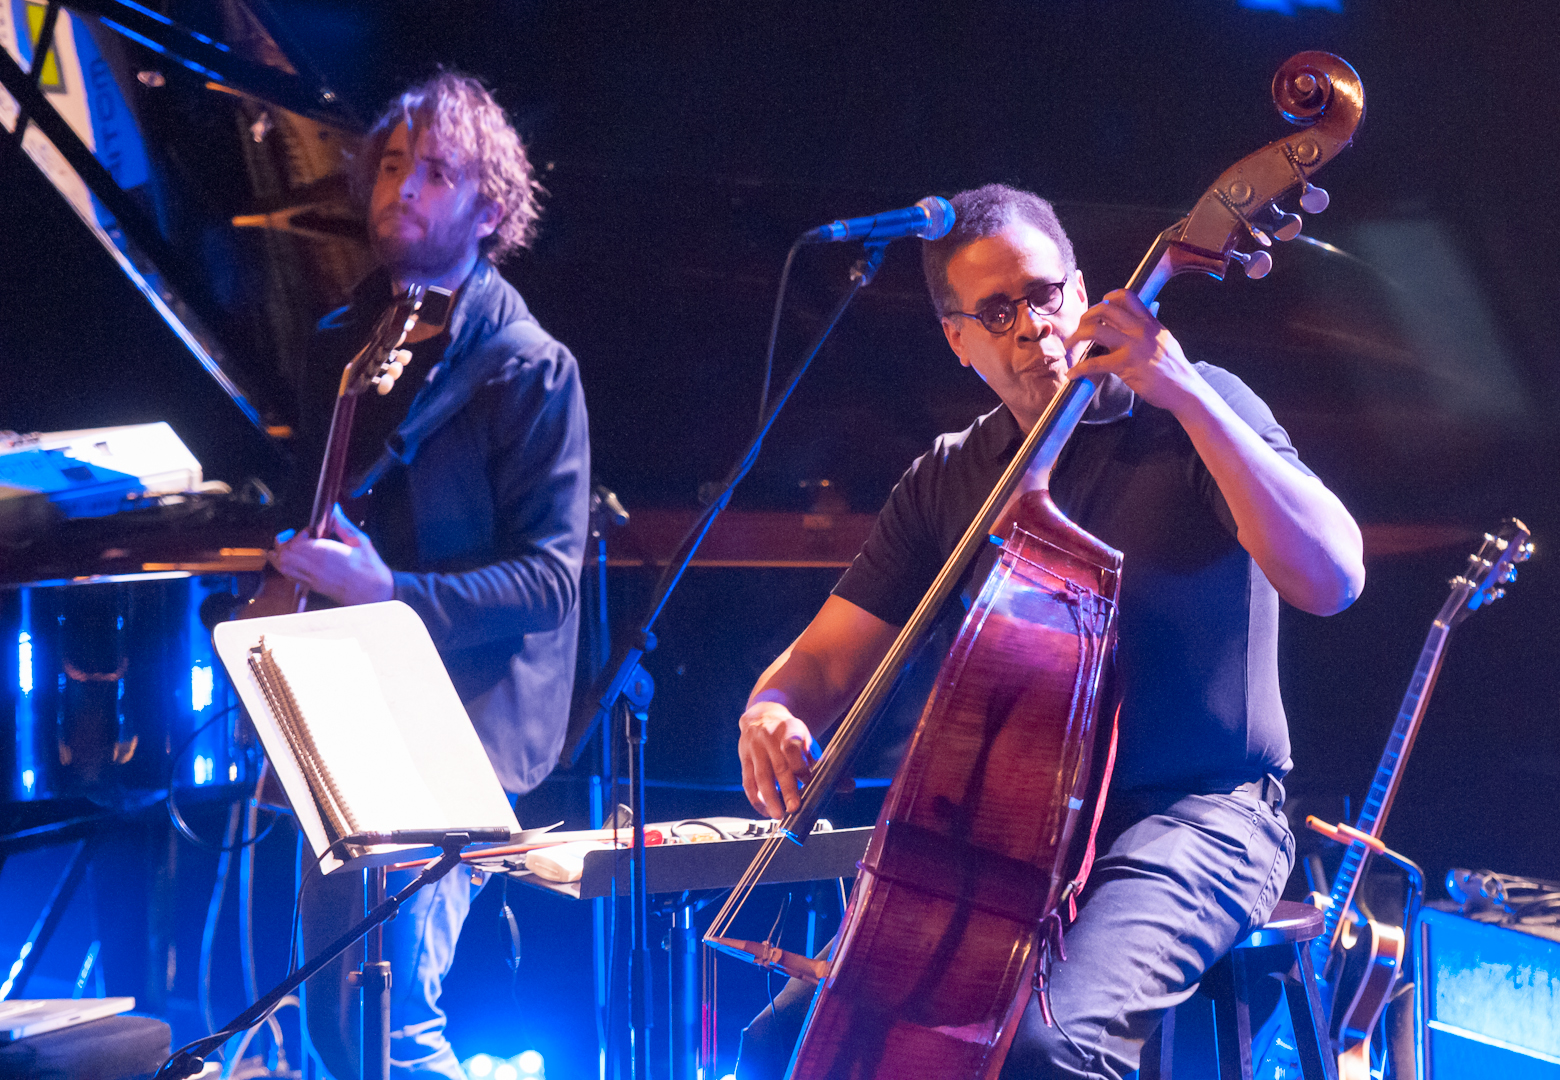 Charles Aluna and Stanley Clarke at the Montreal International Jazz Festival 2012